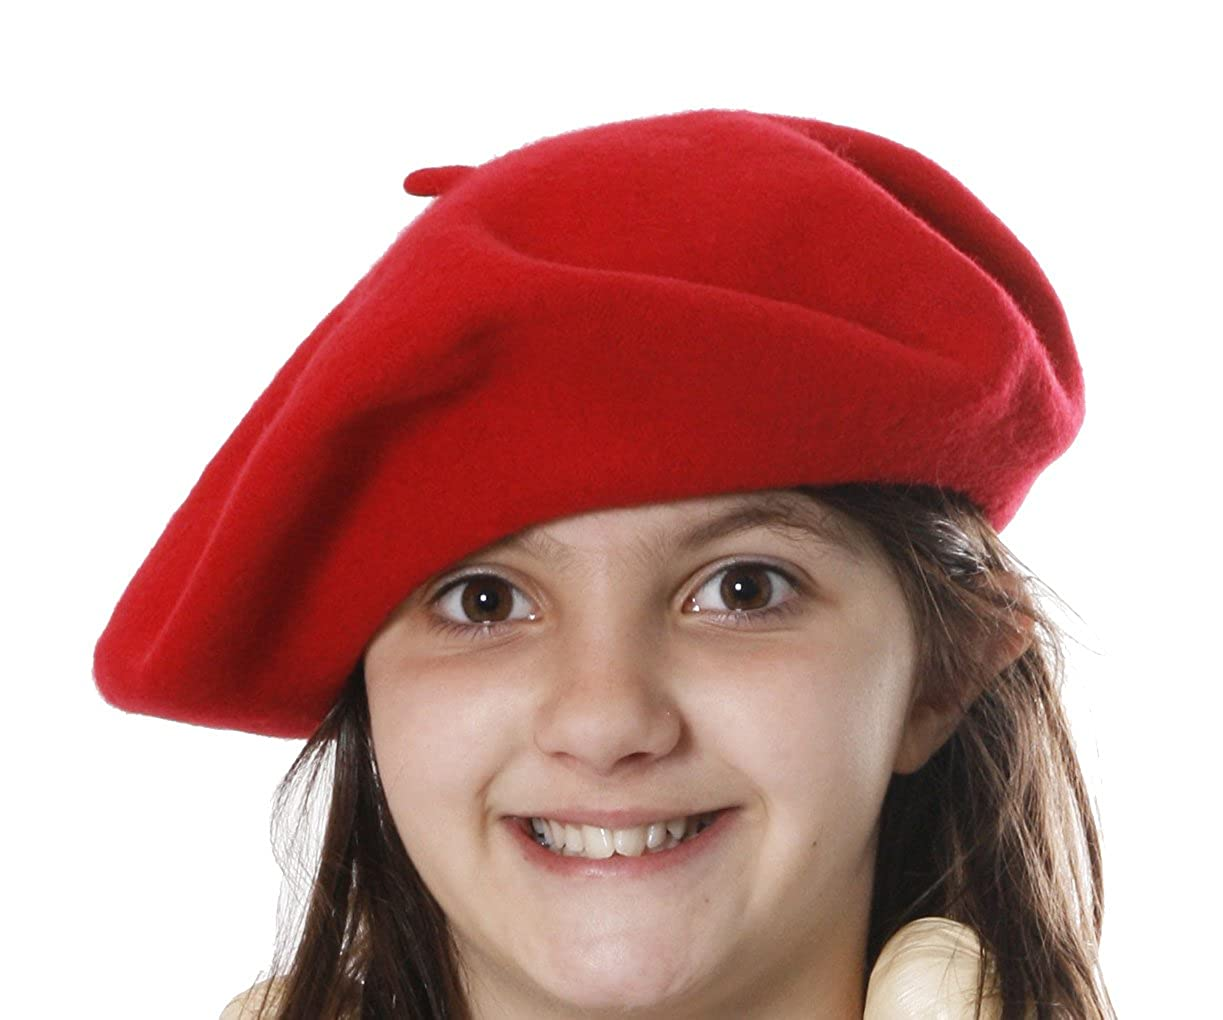 French Style Beret available in Black,Red,Beige or Pink (Red)